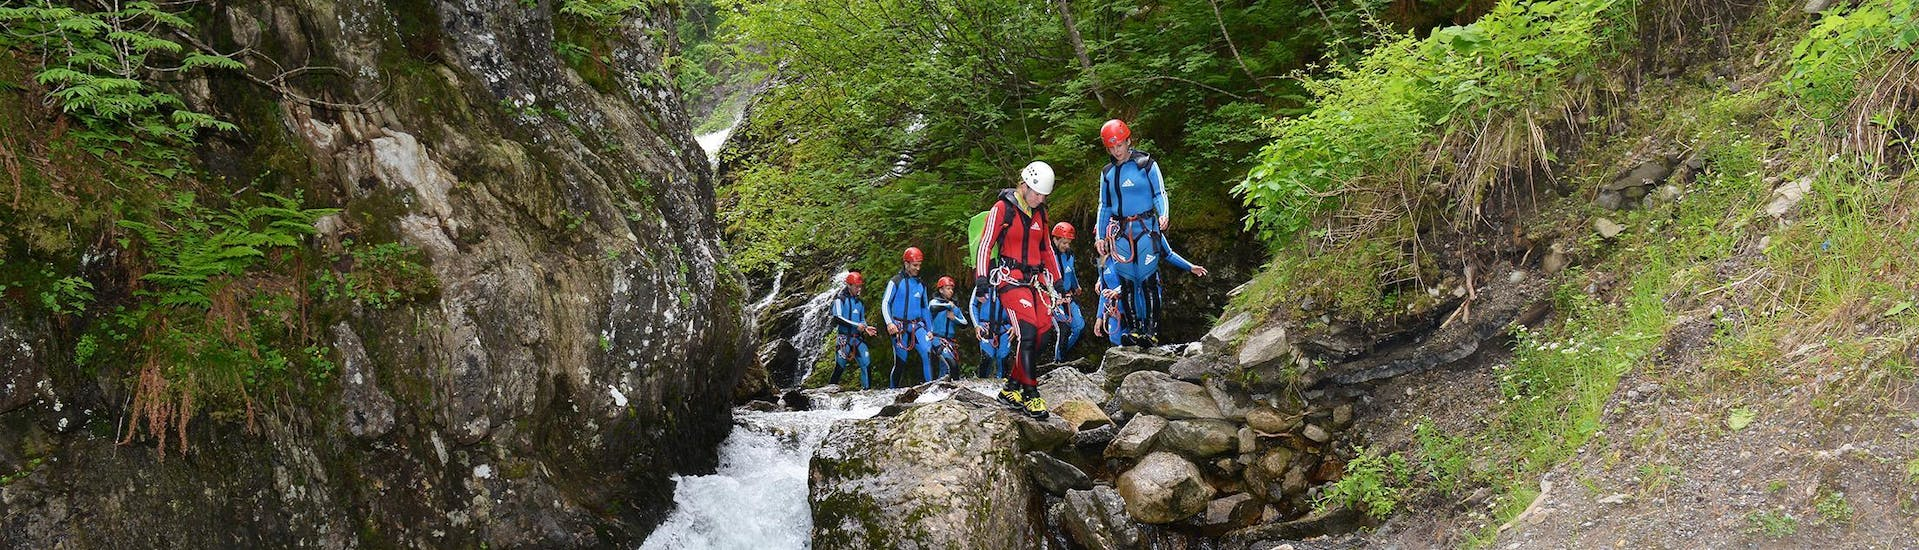 canyoning-king-of-the-alps---alpenrosenklamm-faszinatour-hero